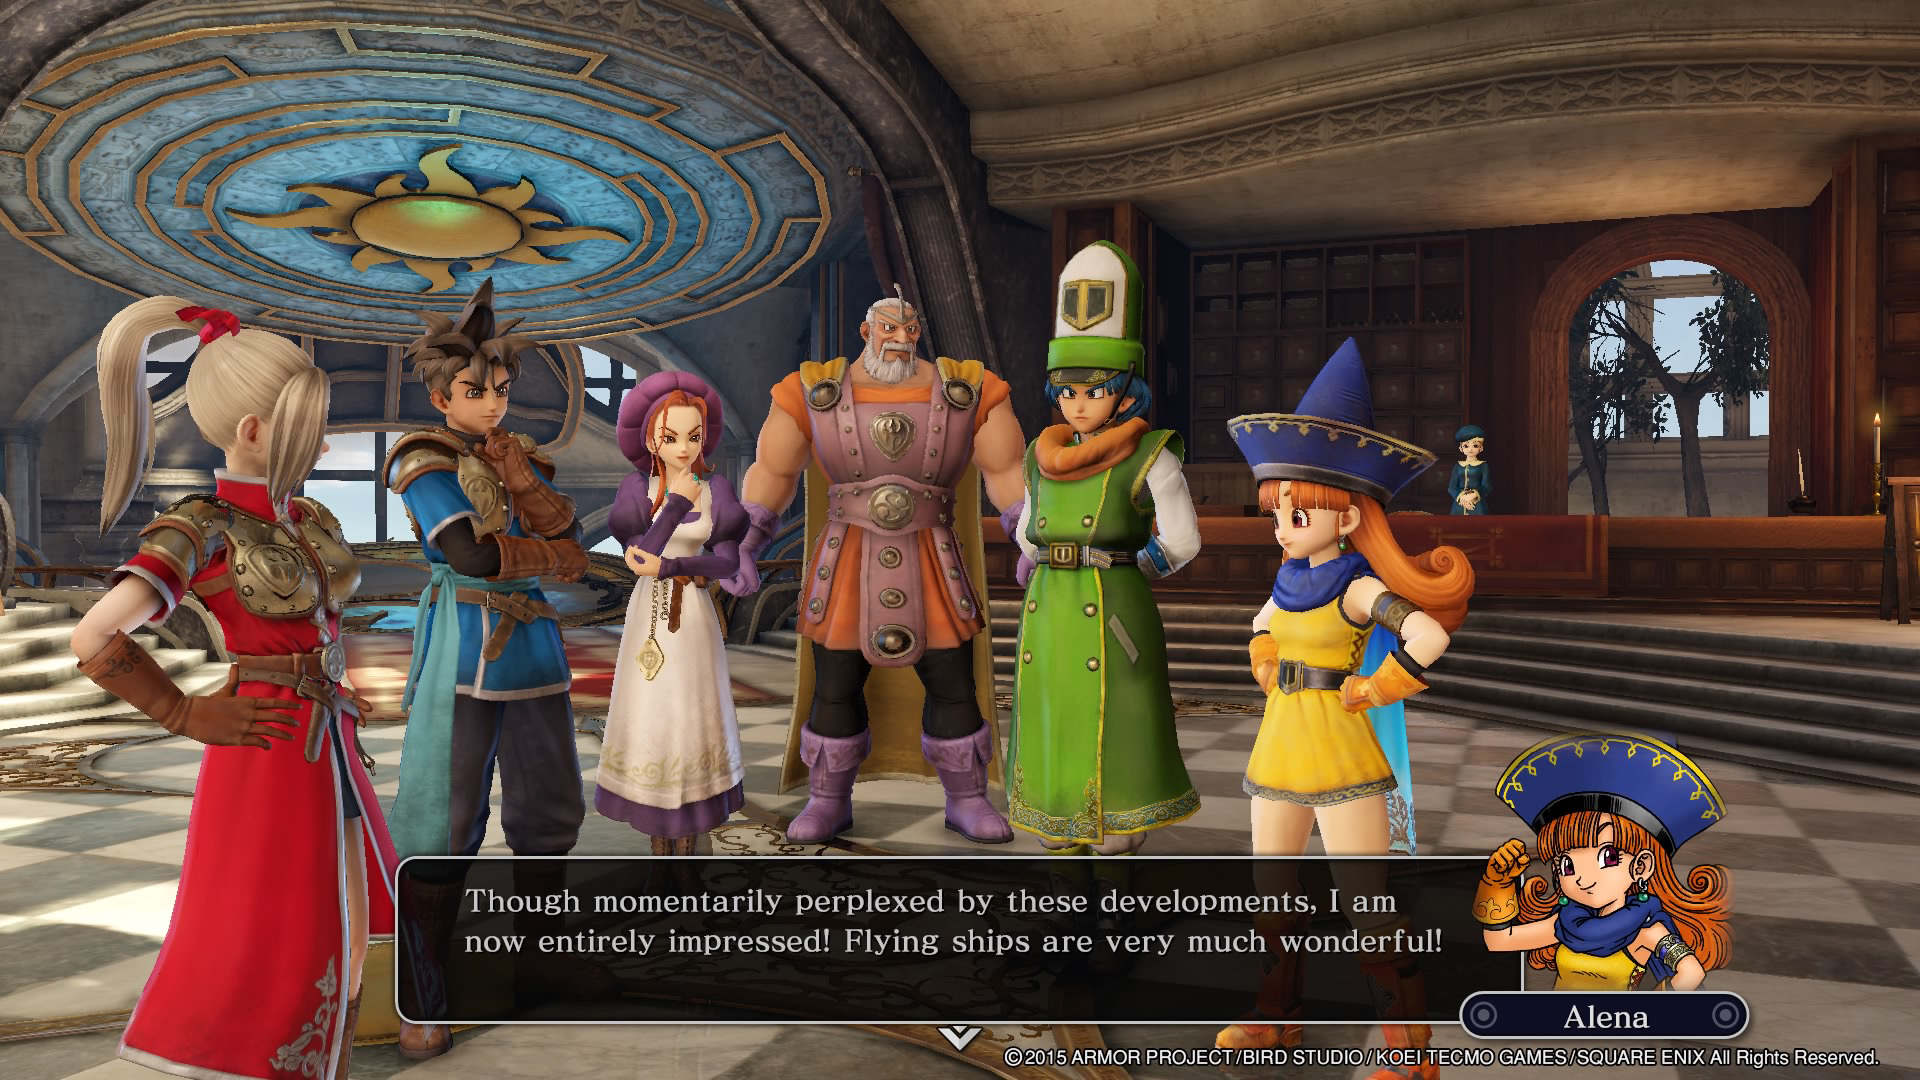 Dragon Quest Heroes The World Tree S Woe And The Blight Below Playstation 4 Review Passion Project Usgamer Materials in dragon quest heroes 2 is something you can easily get from killing enemies. dragon quest heroes the world tree s